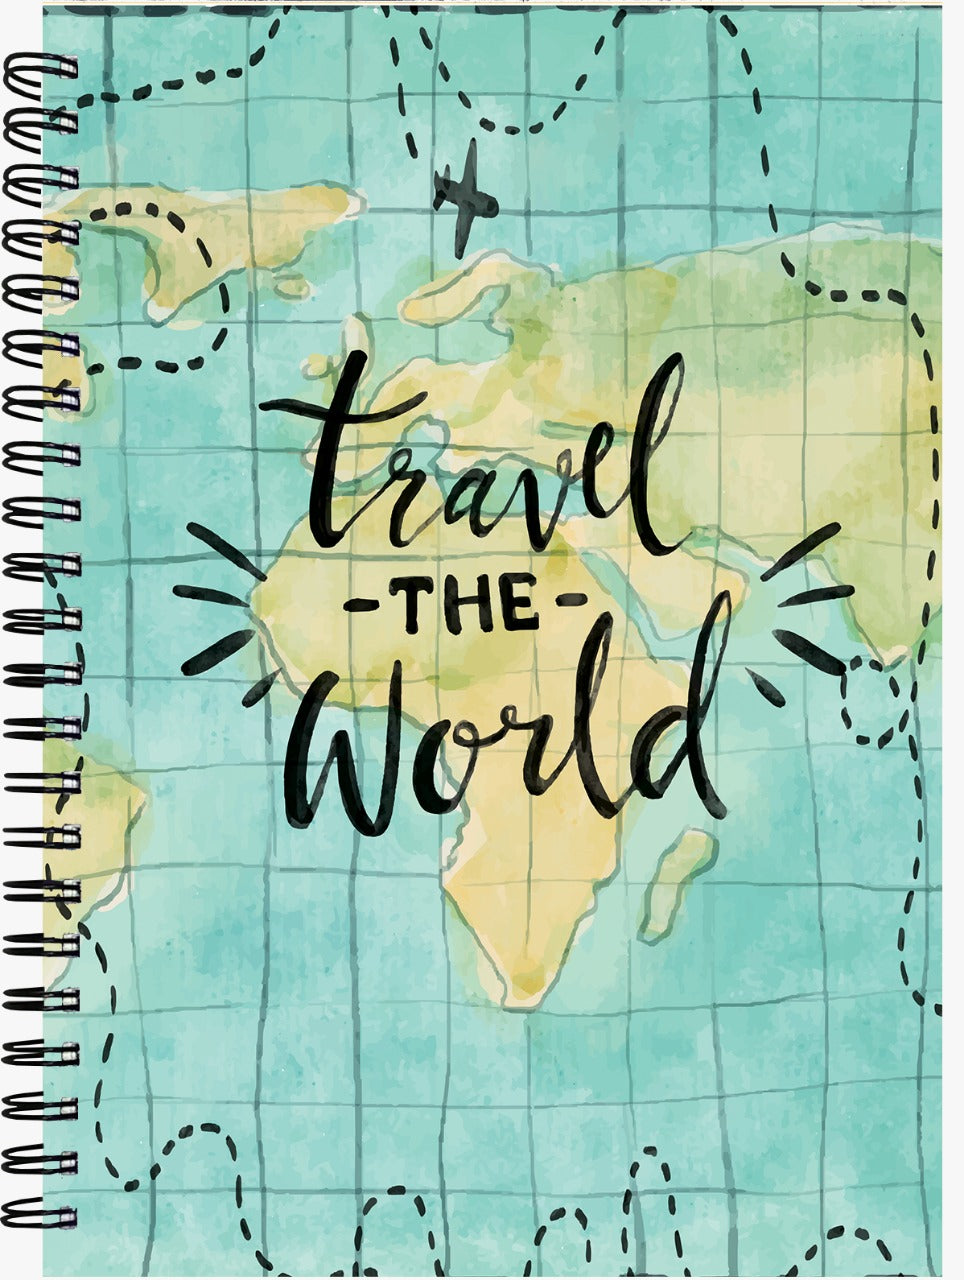 TRAVEL THE WORD